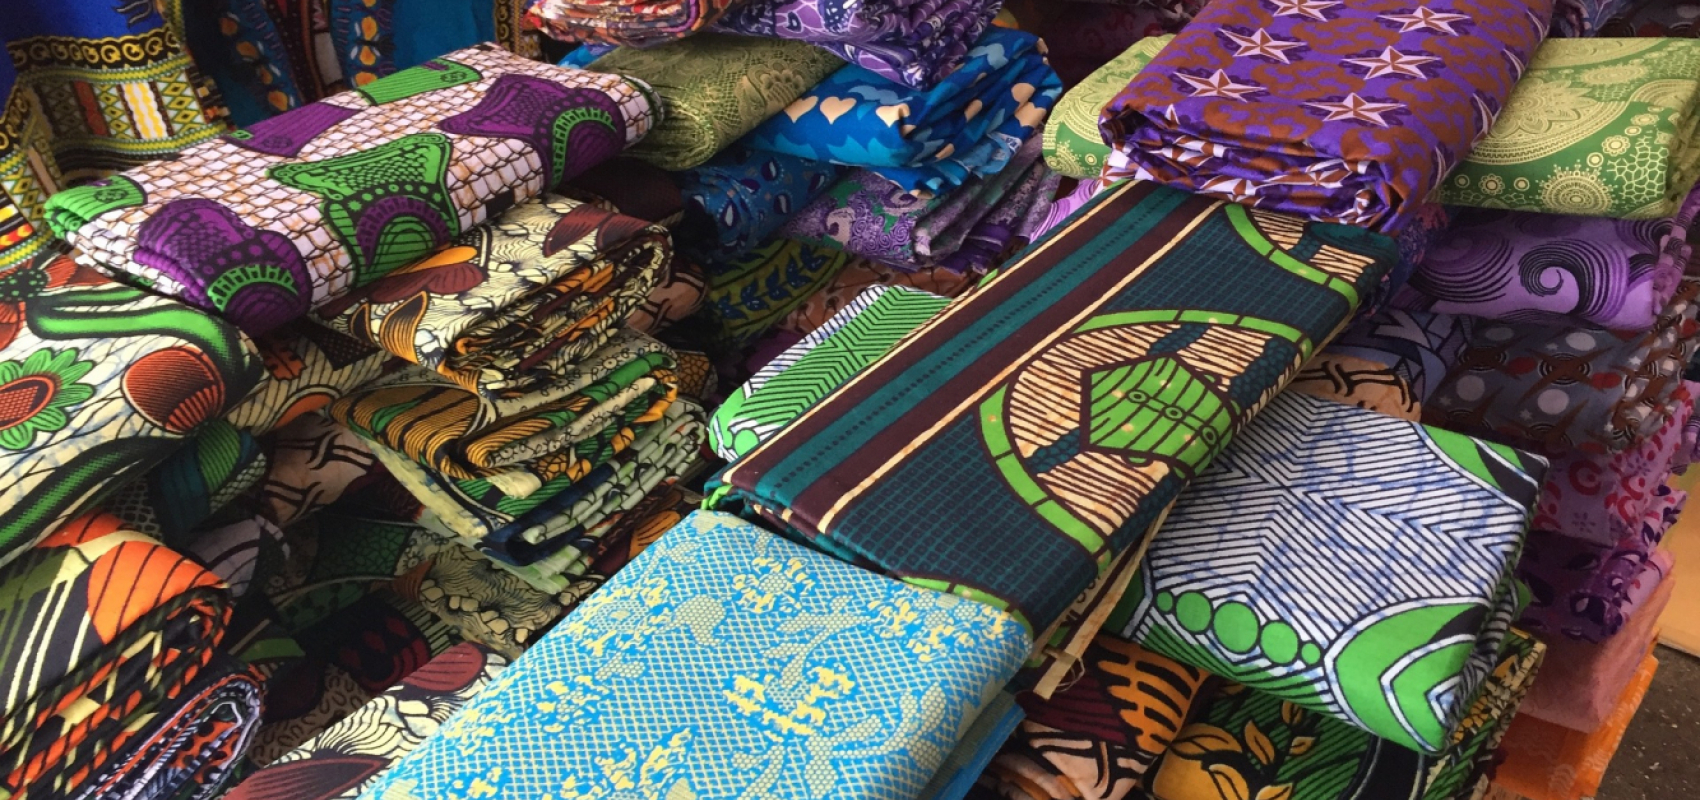 Textiles for sale in market